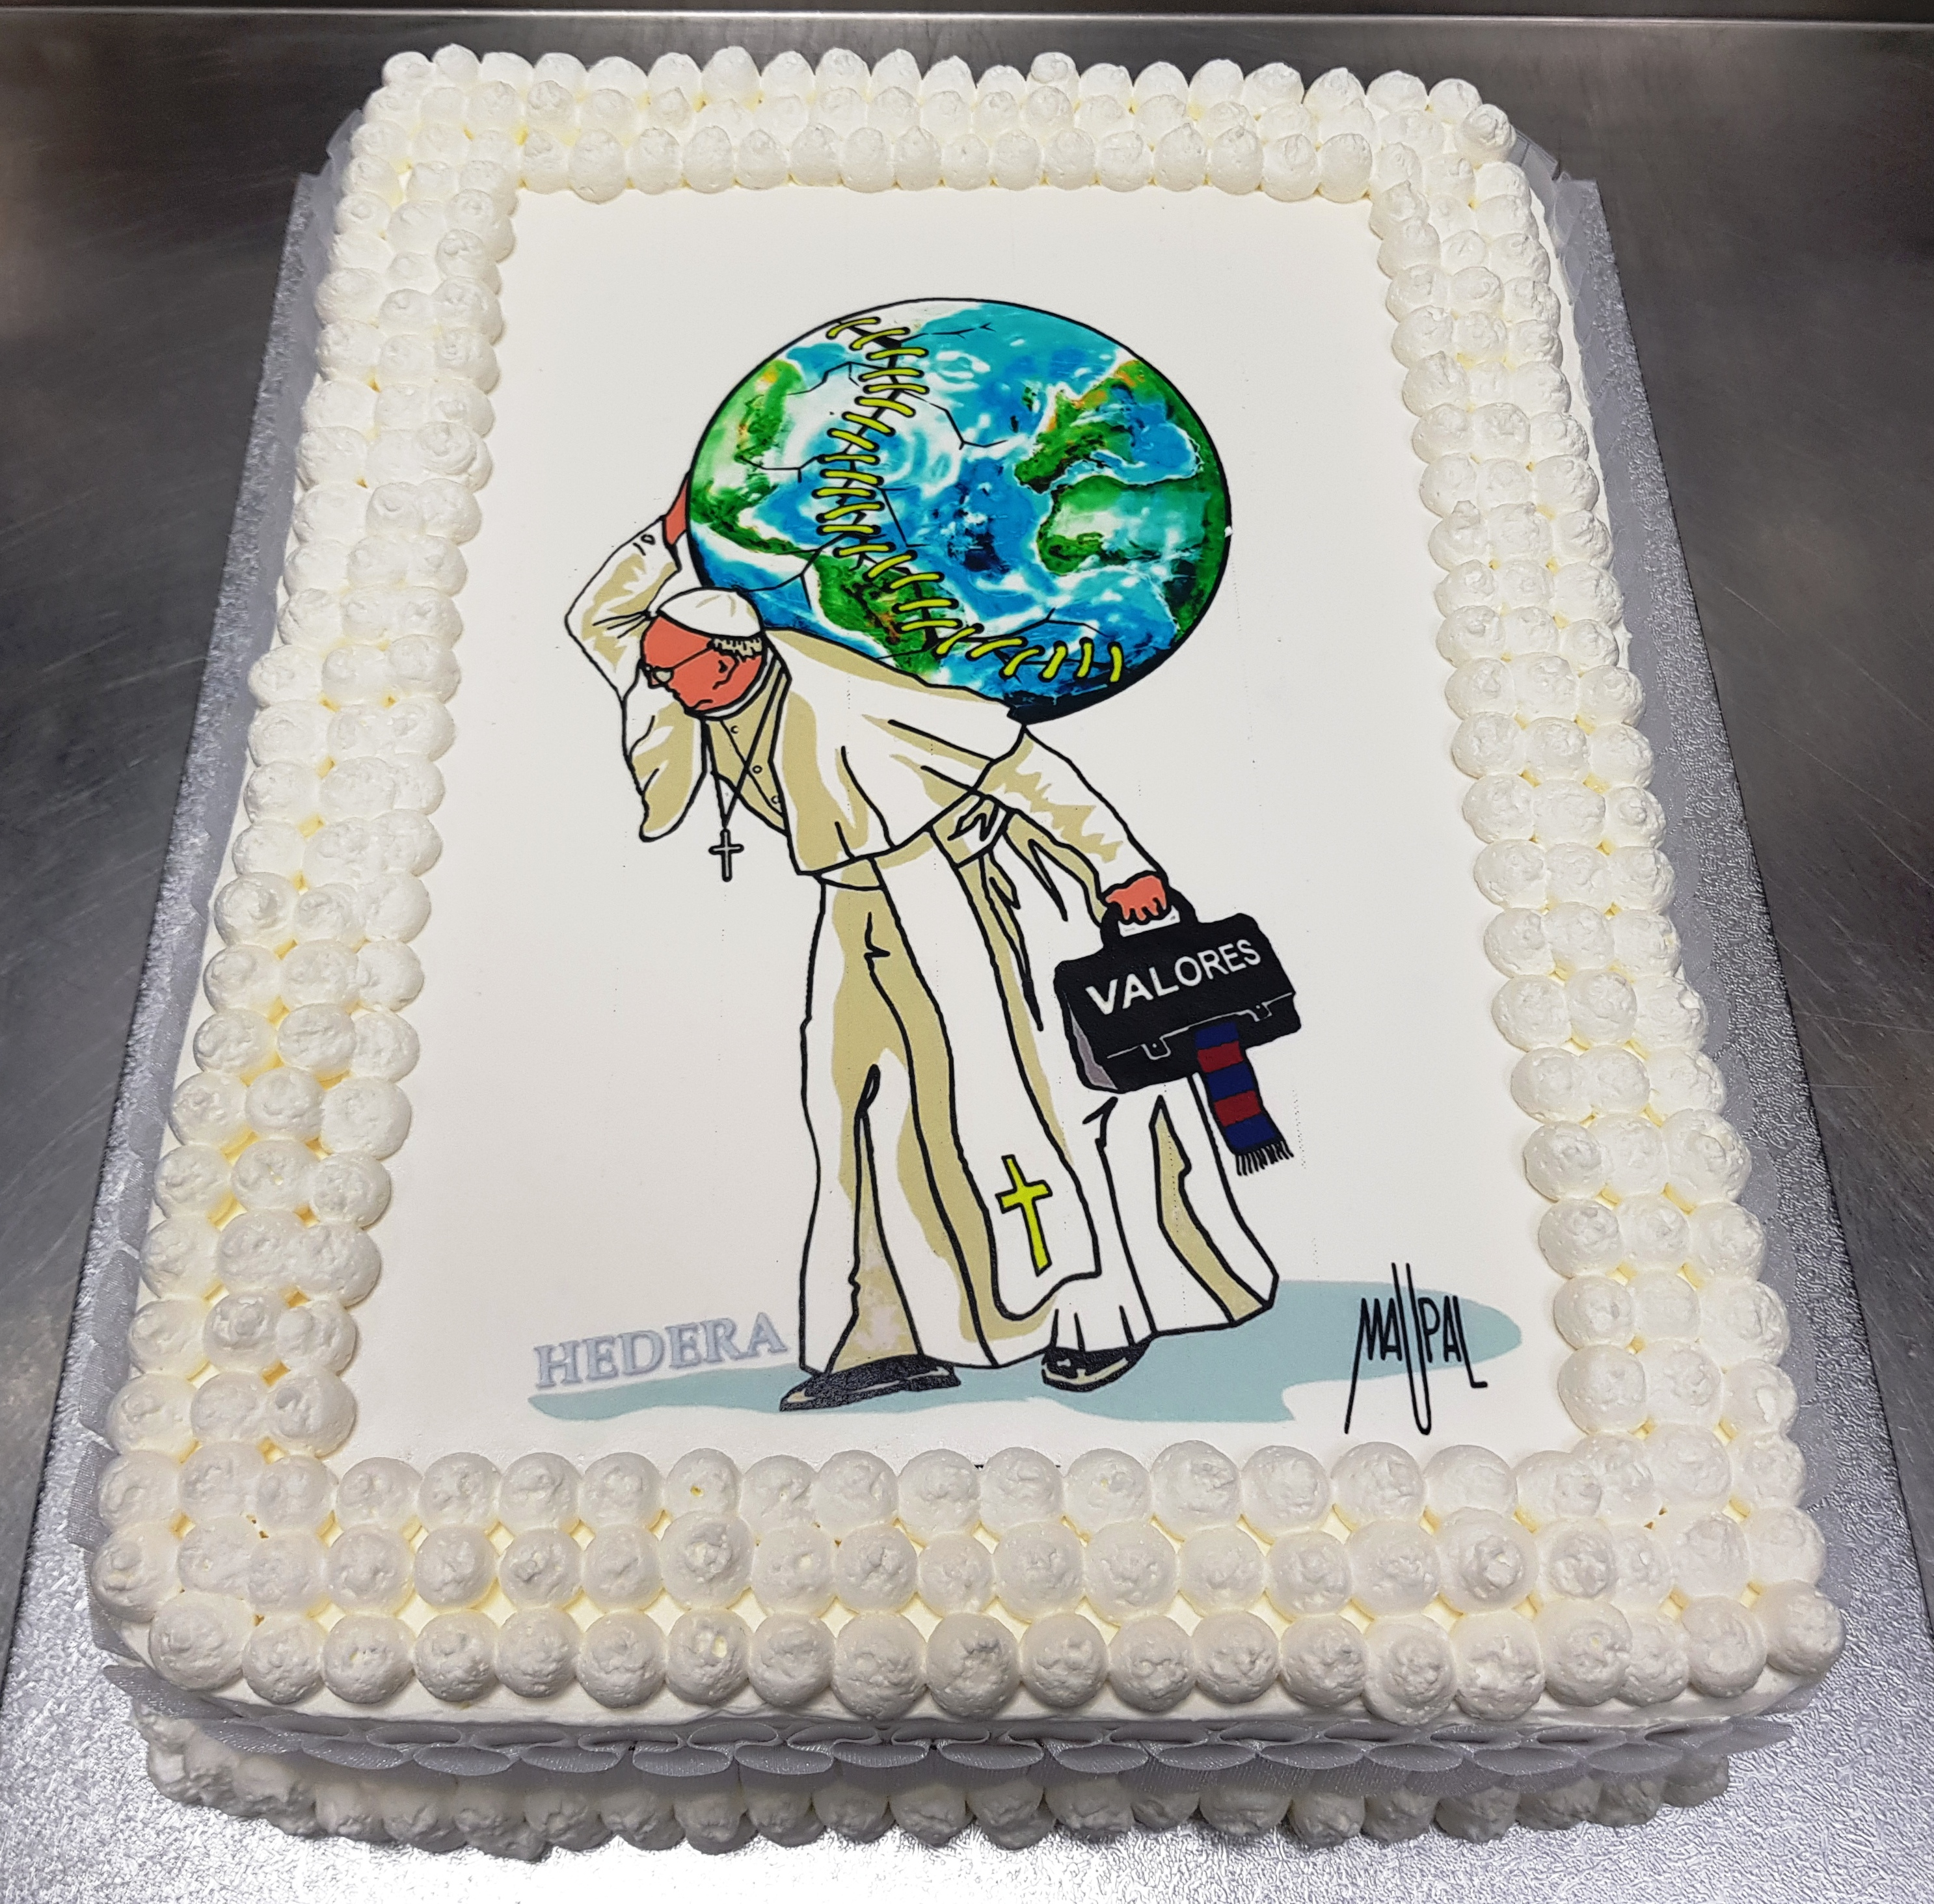 A birthday cake made by Hedera, a baker near the Vatican, with a design by the famous Roman street artist, Maupal